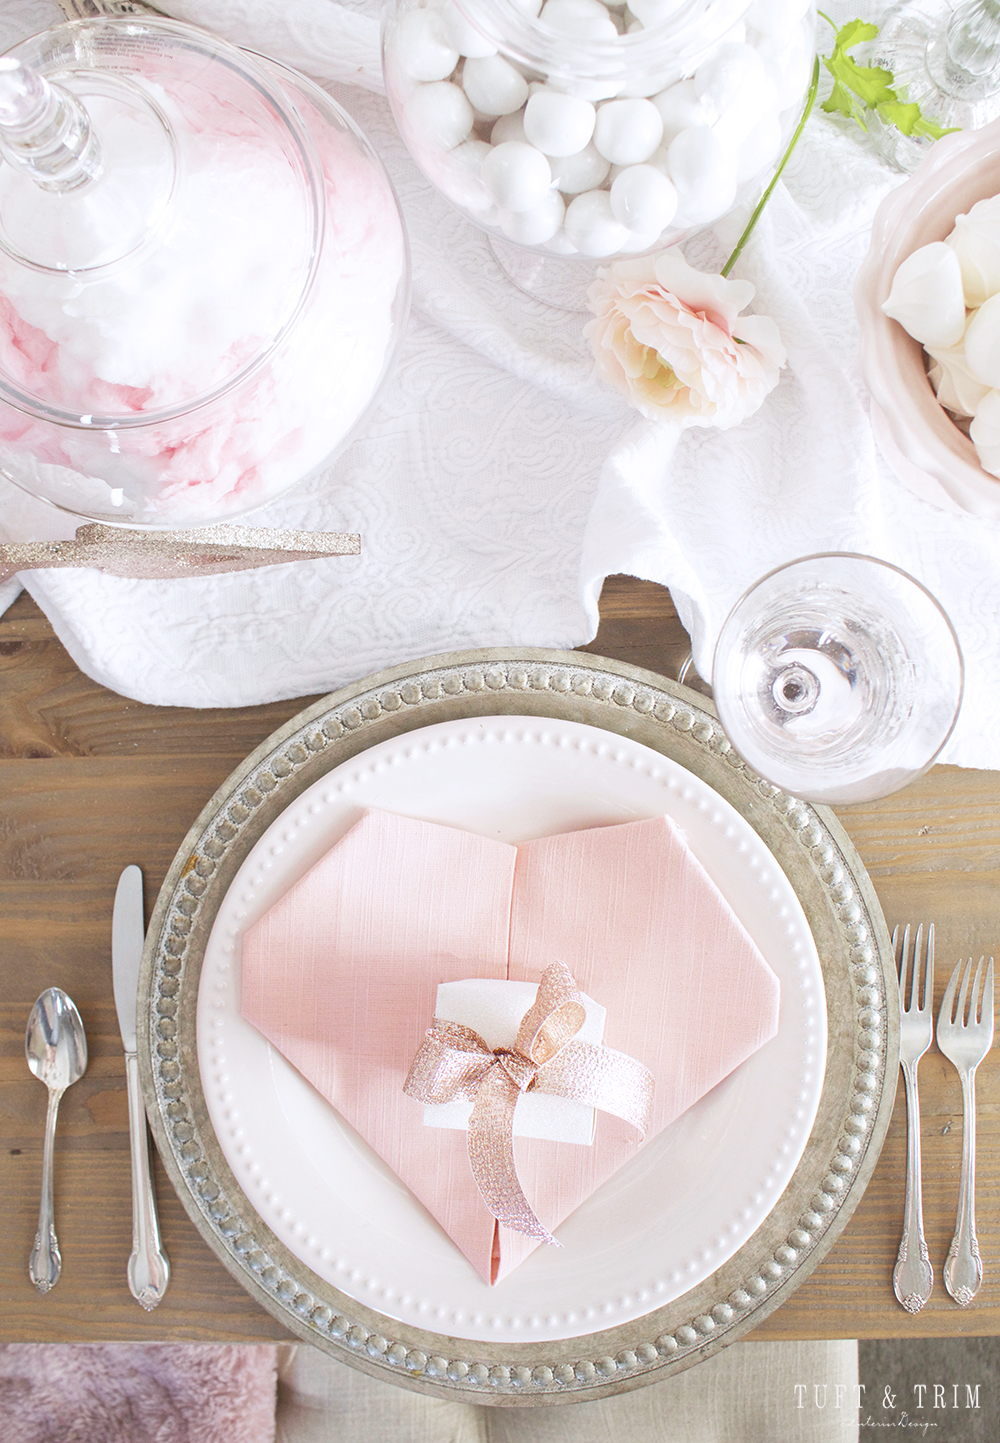 Pretty in Pink: Valentines Day Tablescape Tour with Tuft & Trim